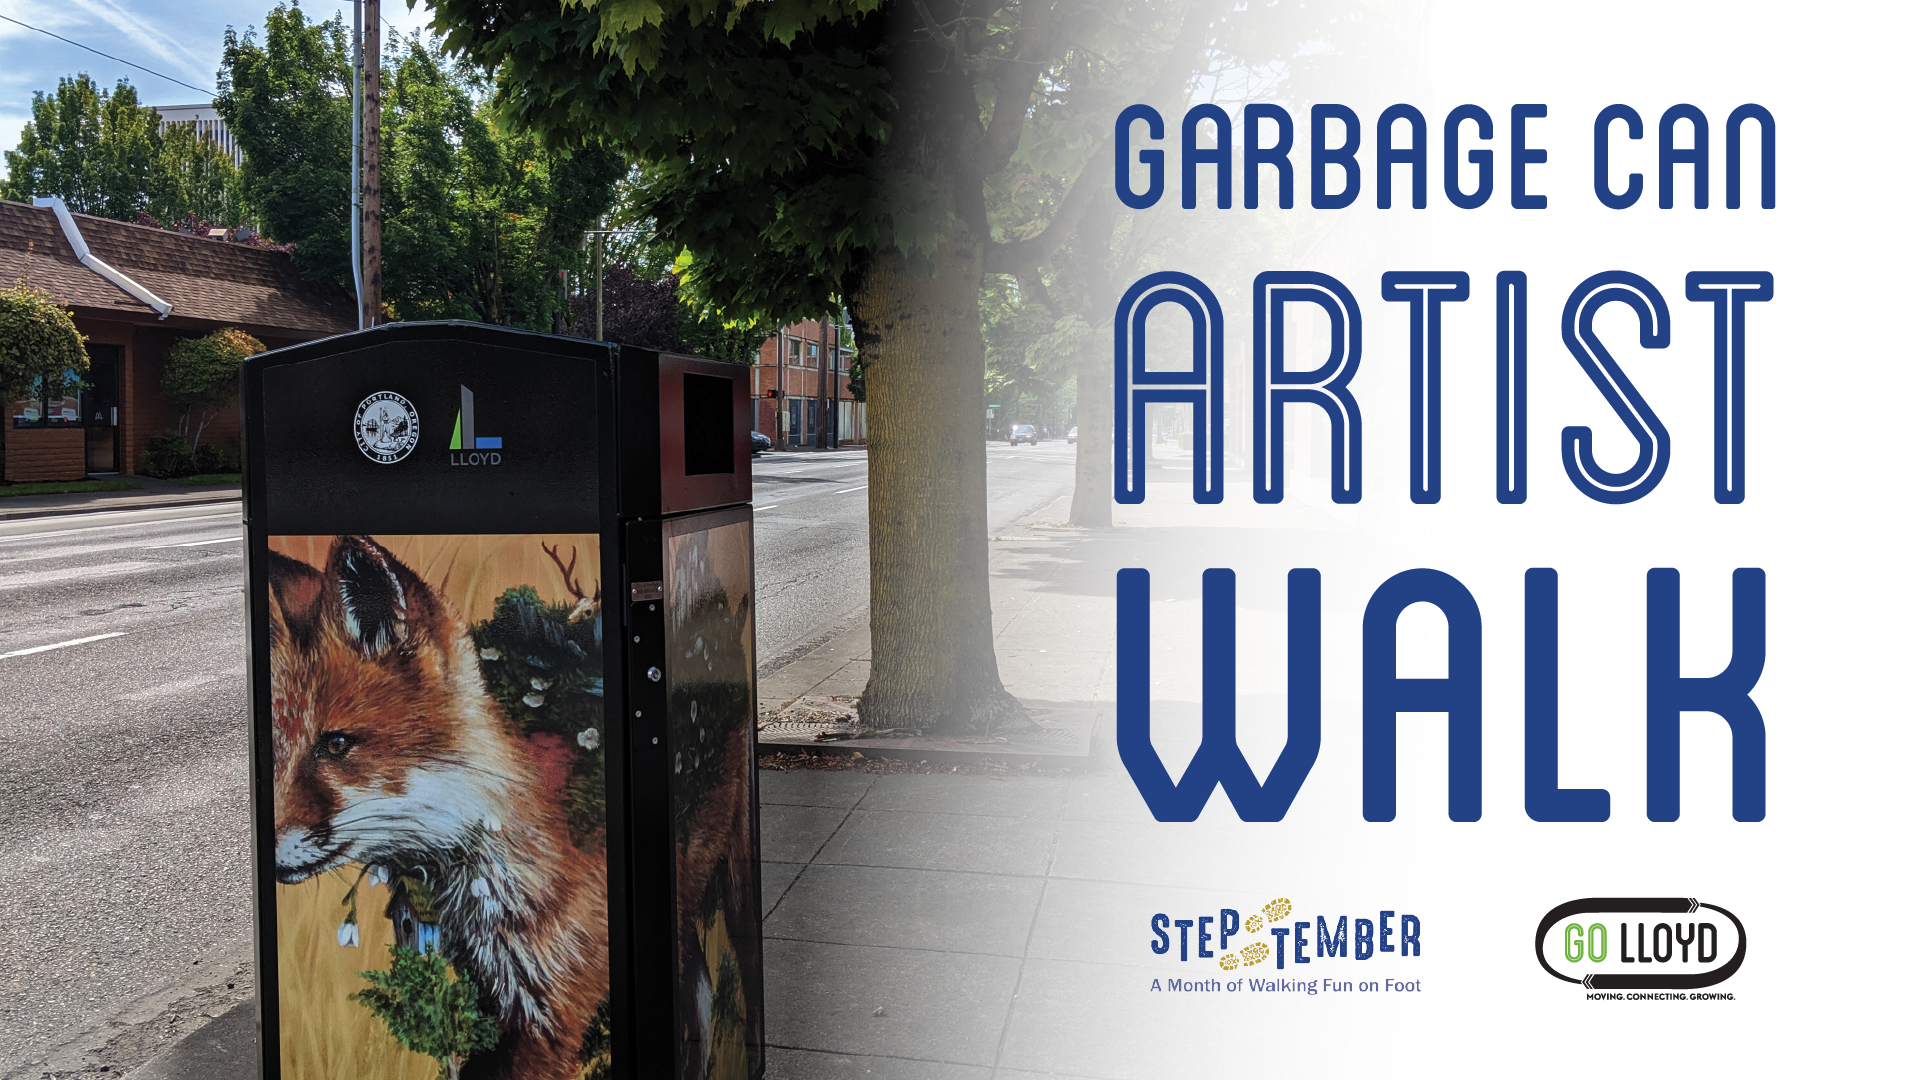 2019 Garbage Can Artist Walk Online Event.png